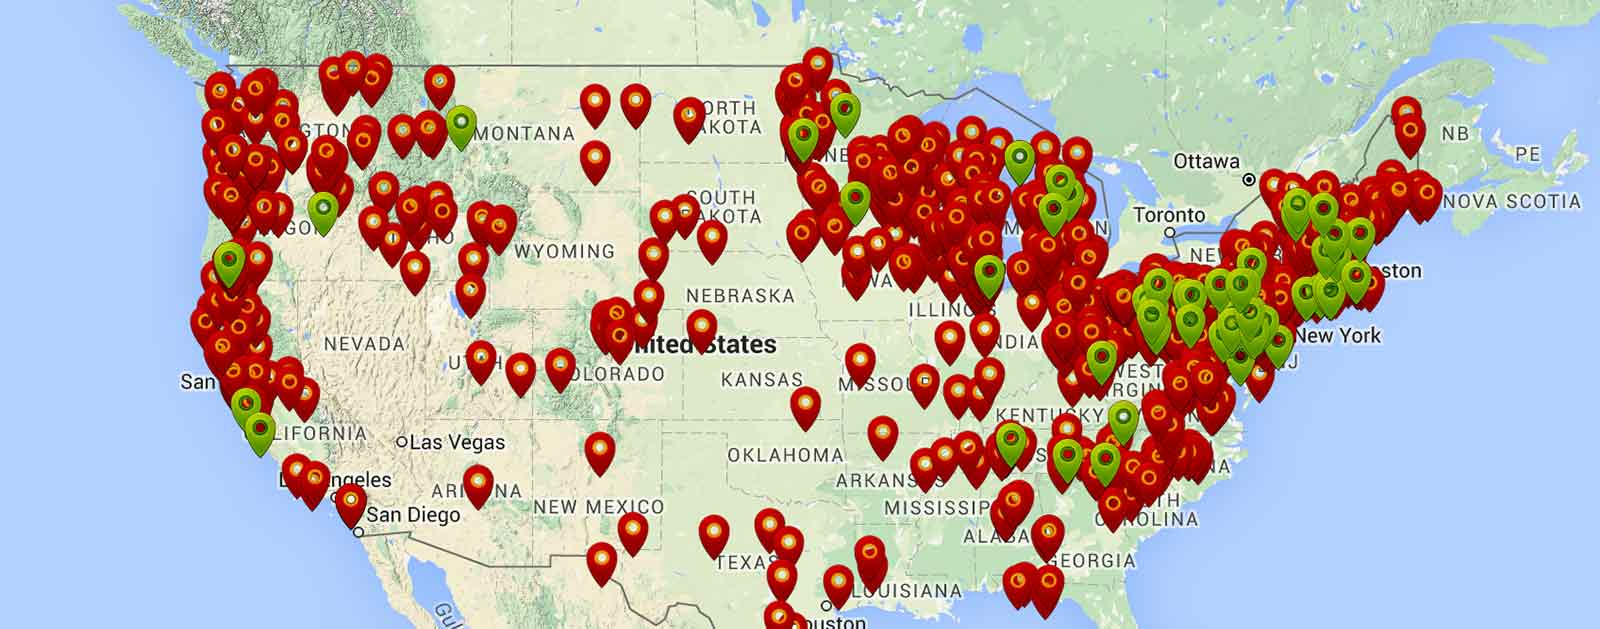 Map of American Dams Removed Since 1912